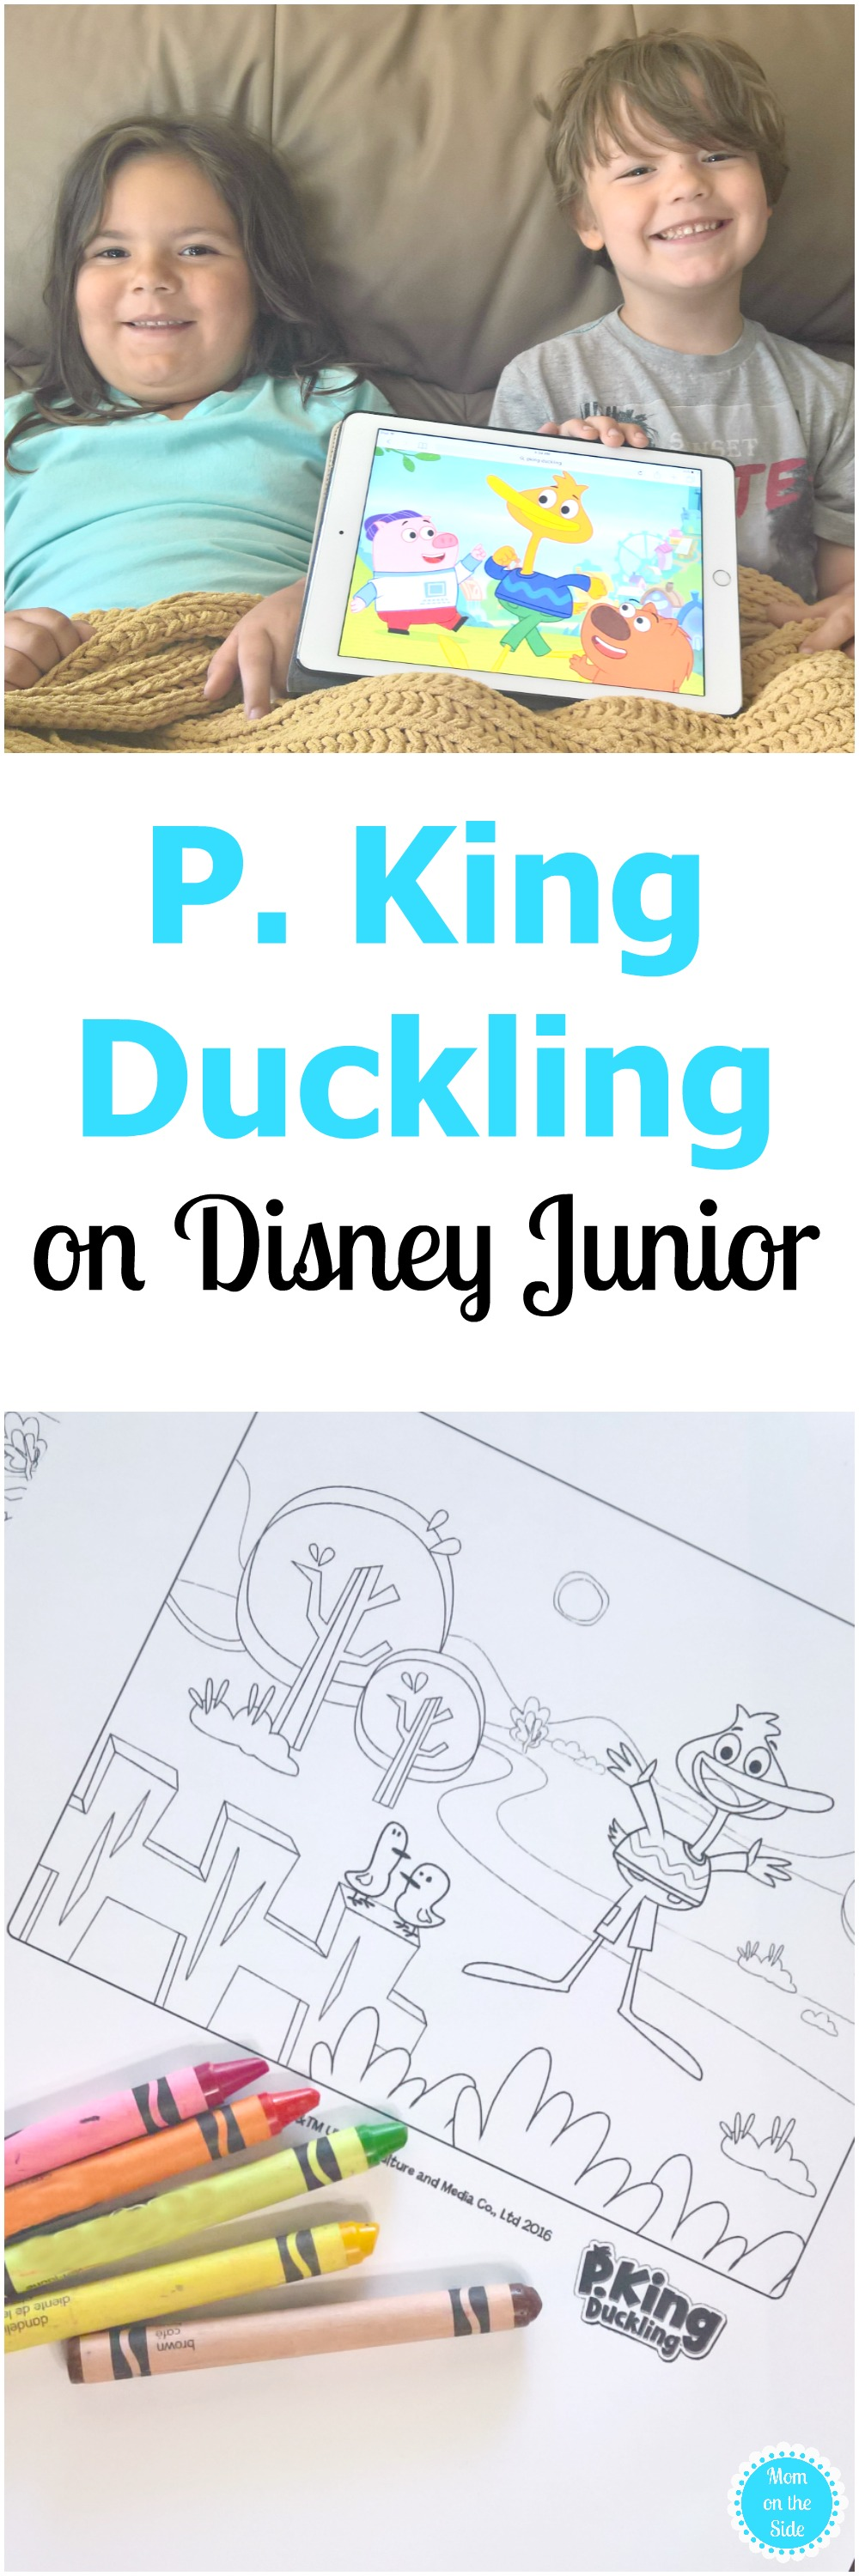 Now Show P. King Duckling on Disney Junior